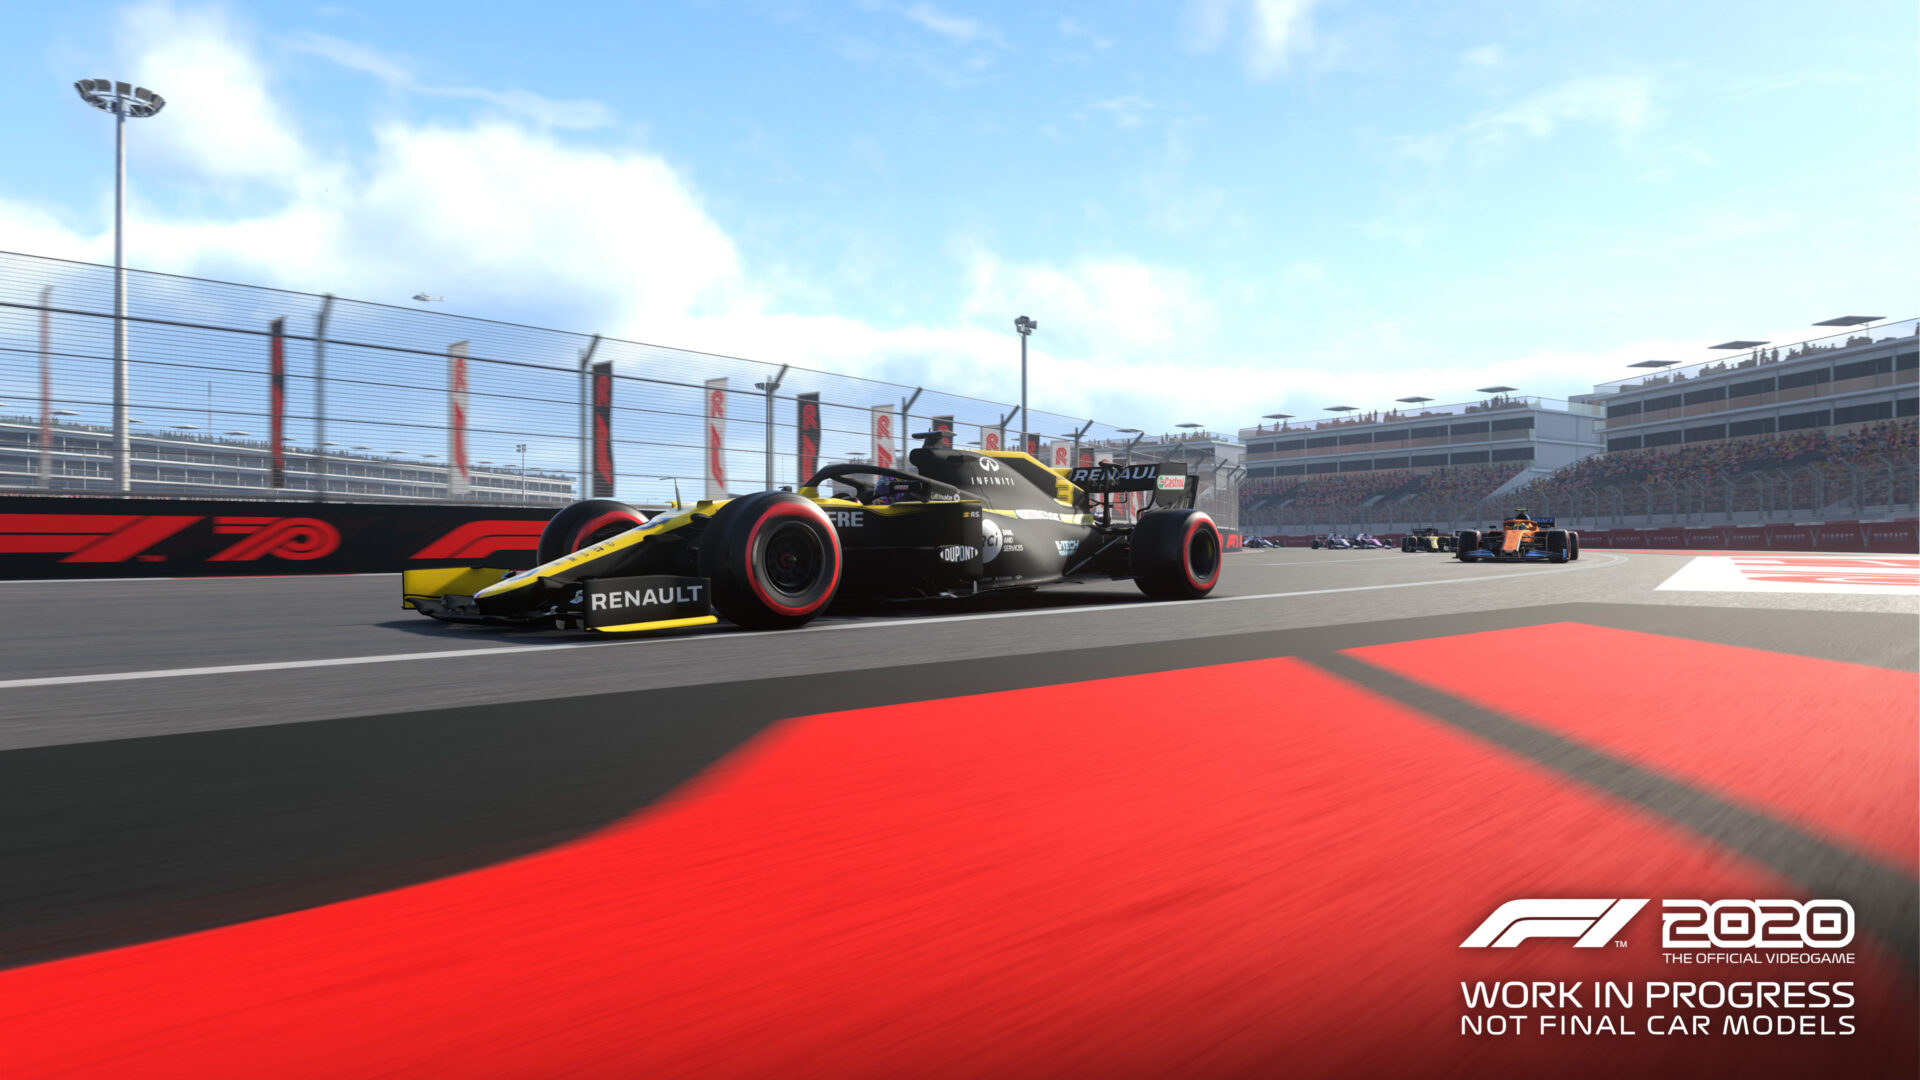 f1 2020, change difficulty